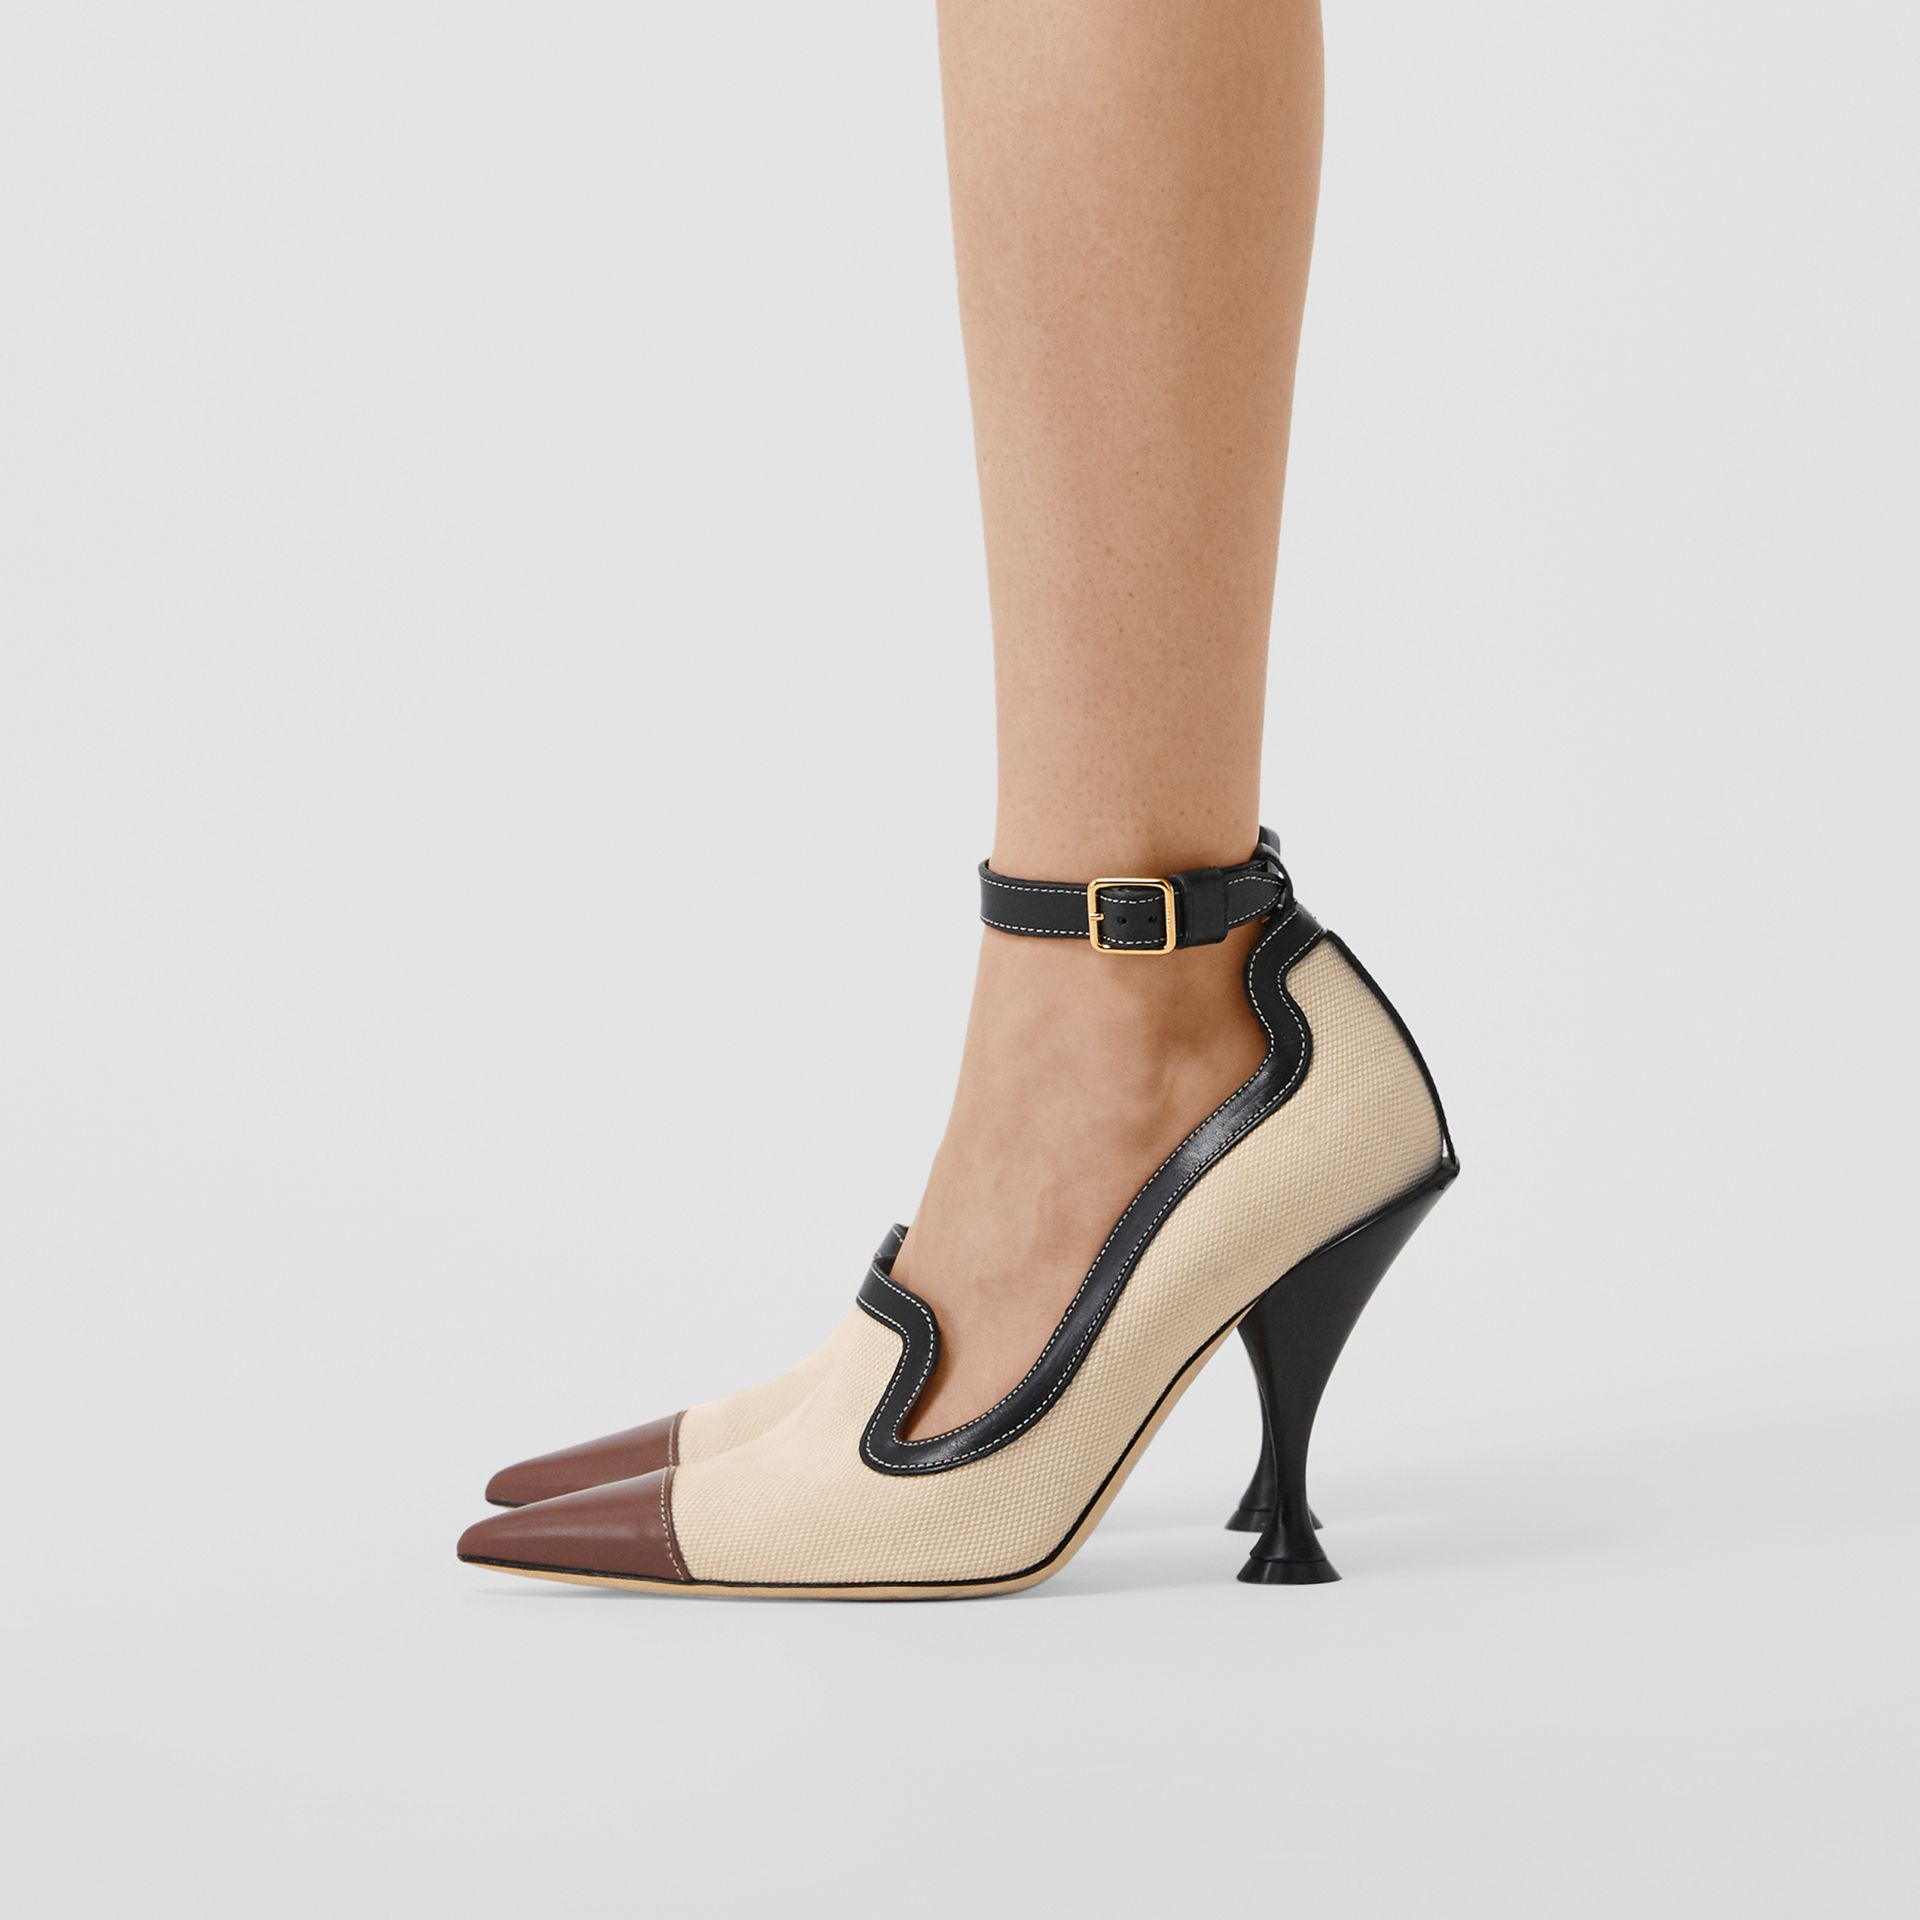 Cotton Canvas and Leather Point-toe Pumps in Natural/black - Women | Burberry - gallery image 2